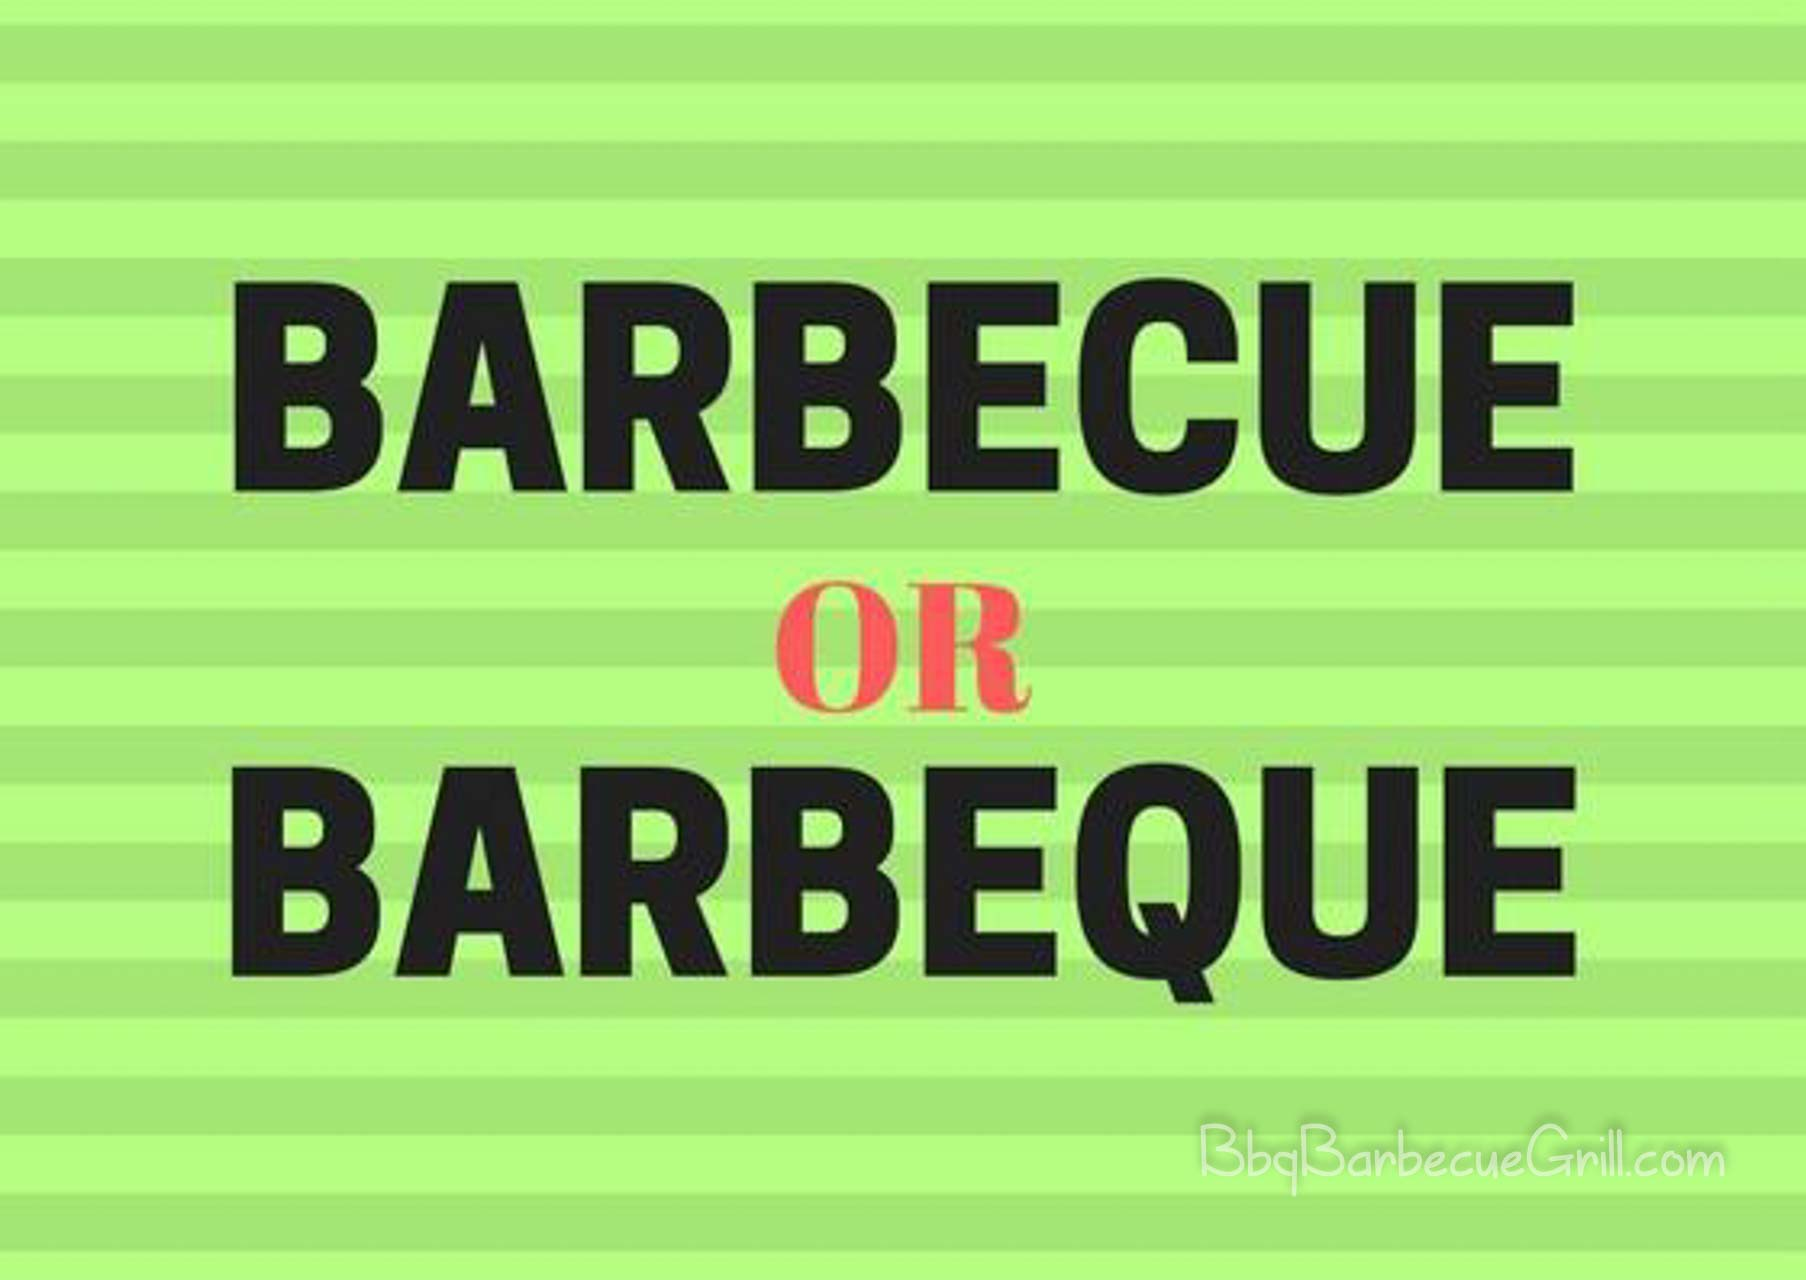 Barbecue or barbeque